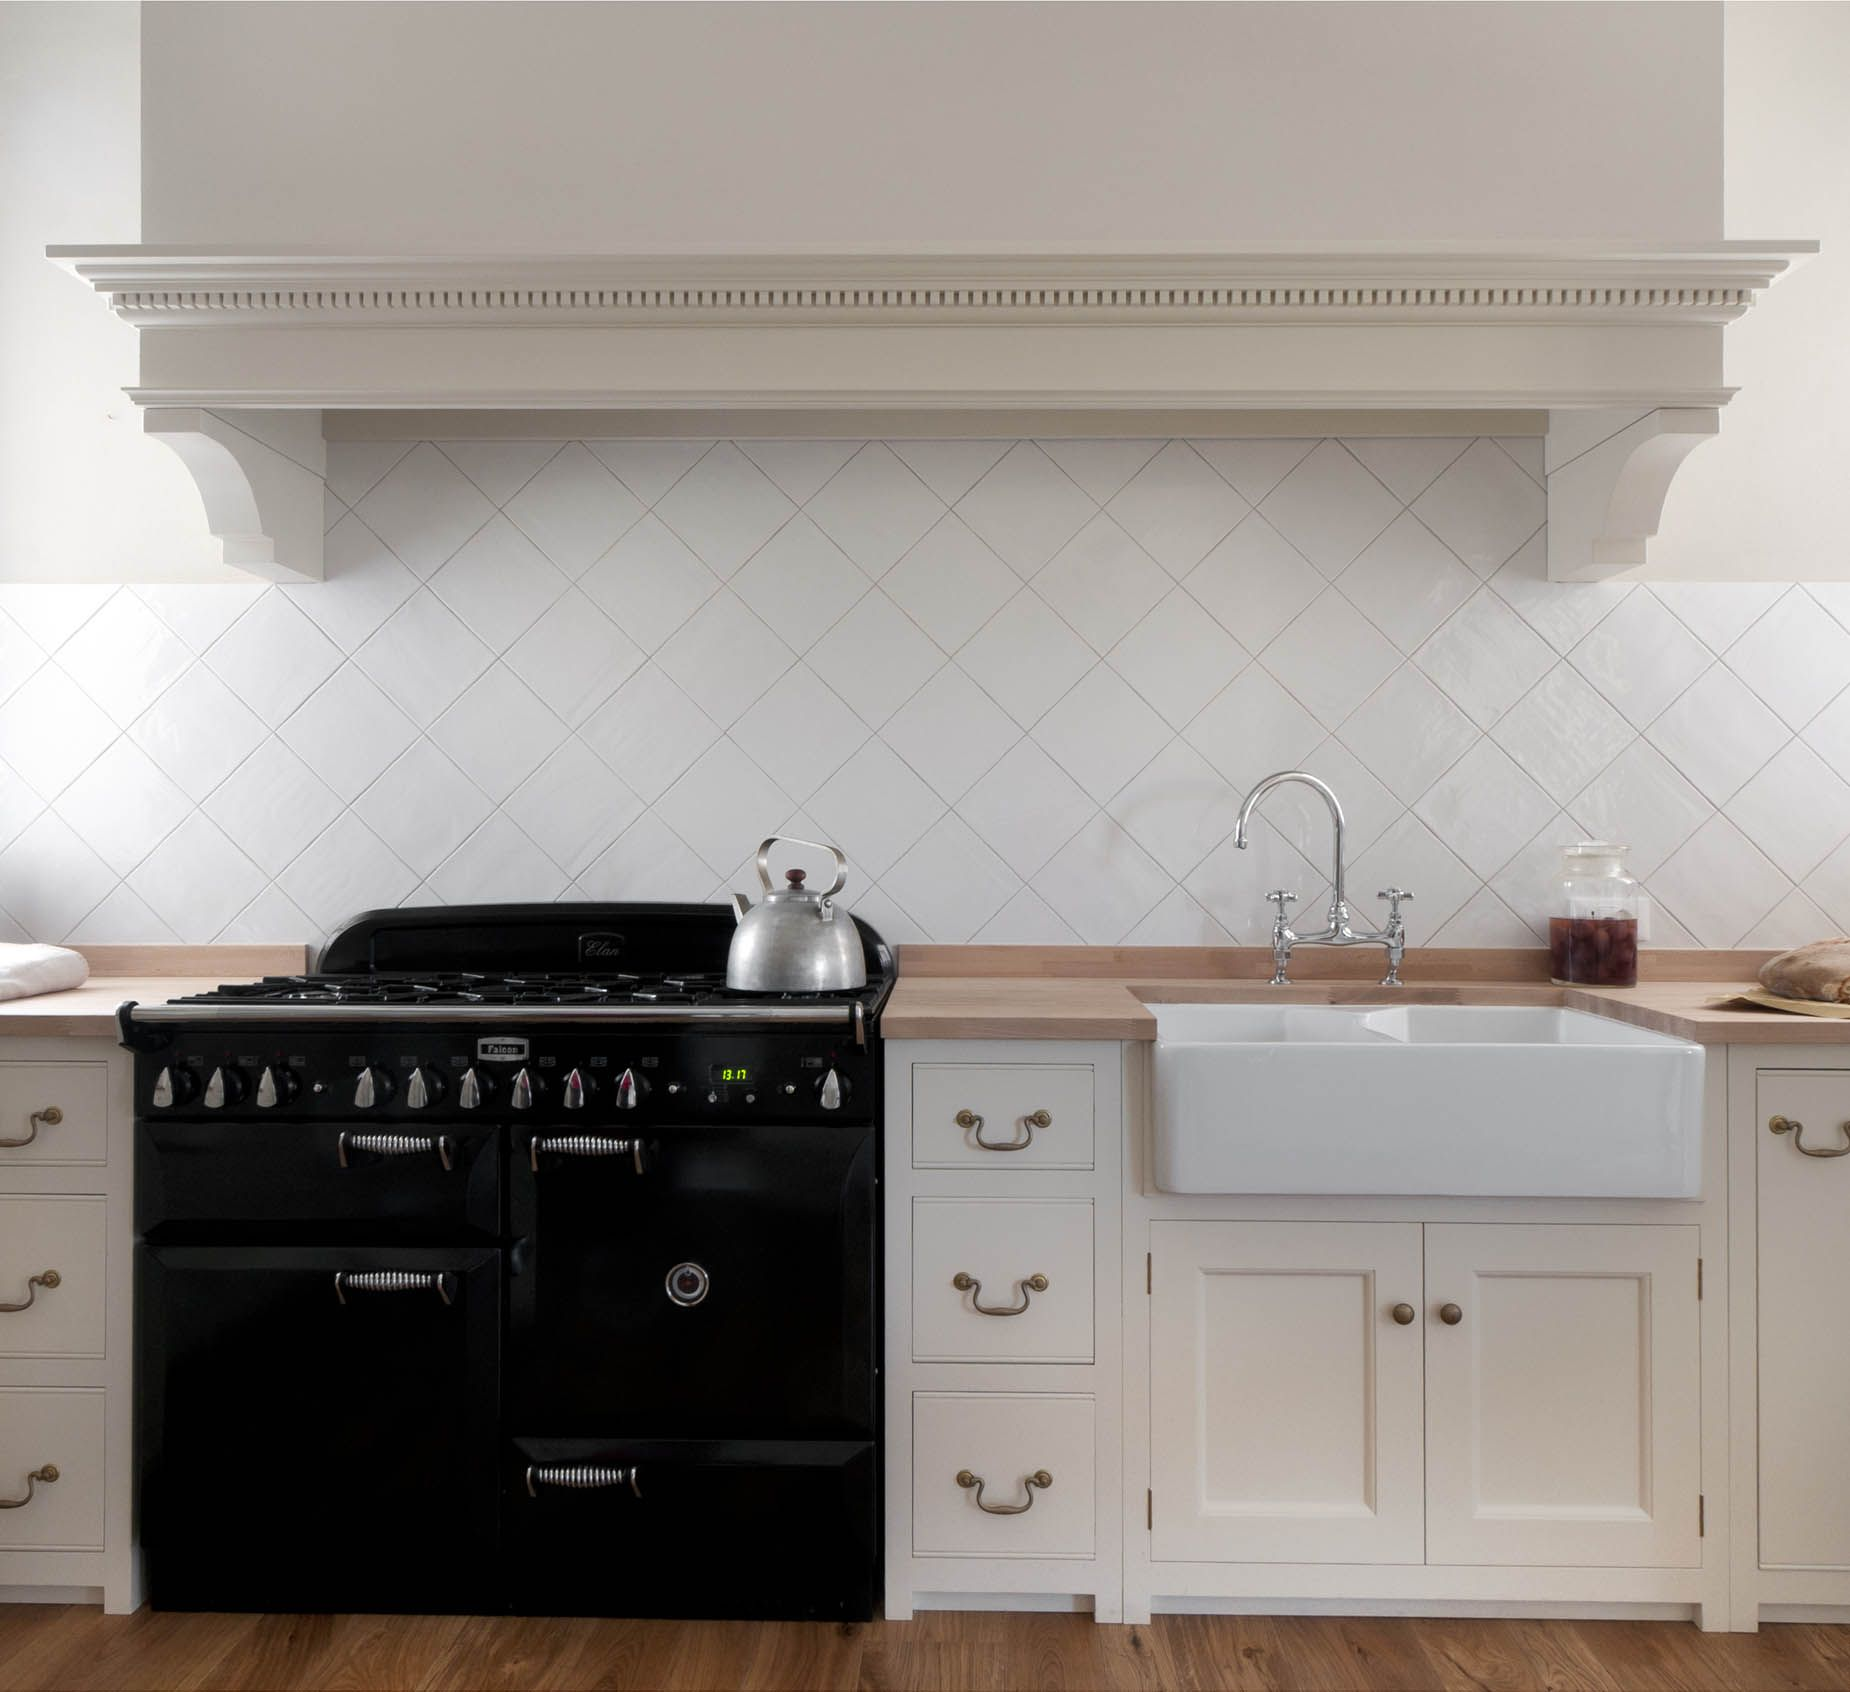 Monticello Kitchen by Homewood Bespoke: la classica cucina in stile ...